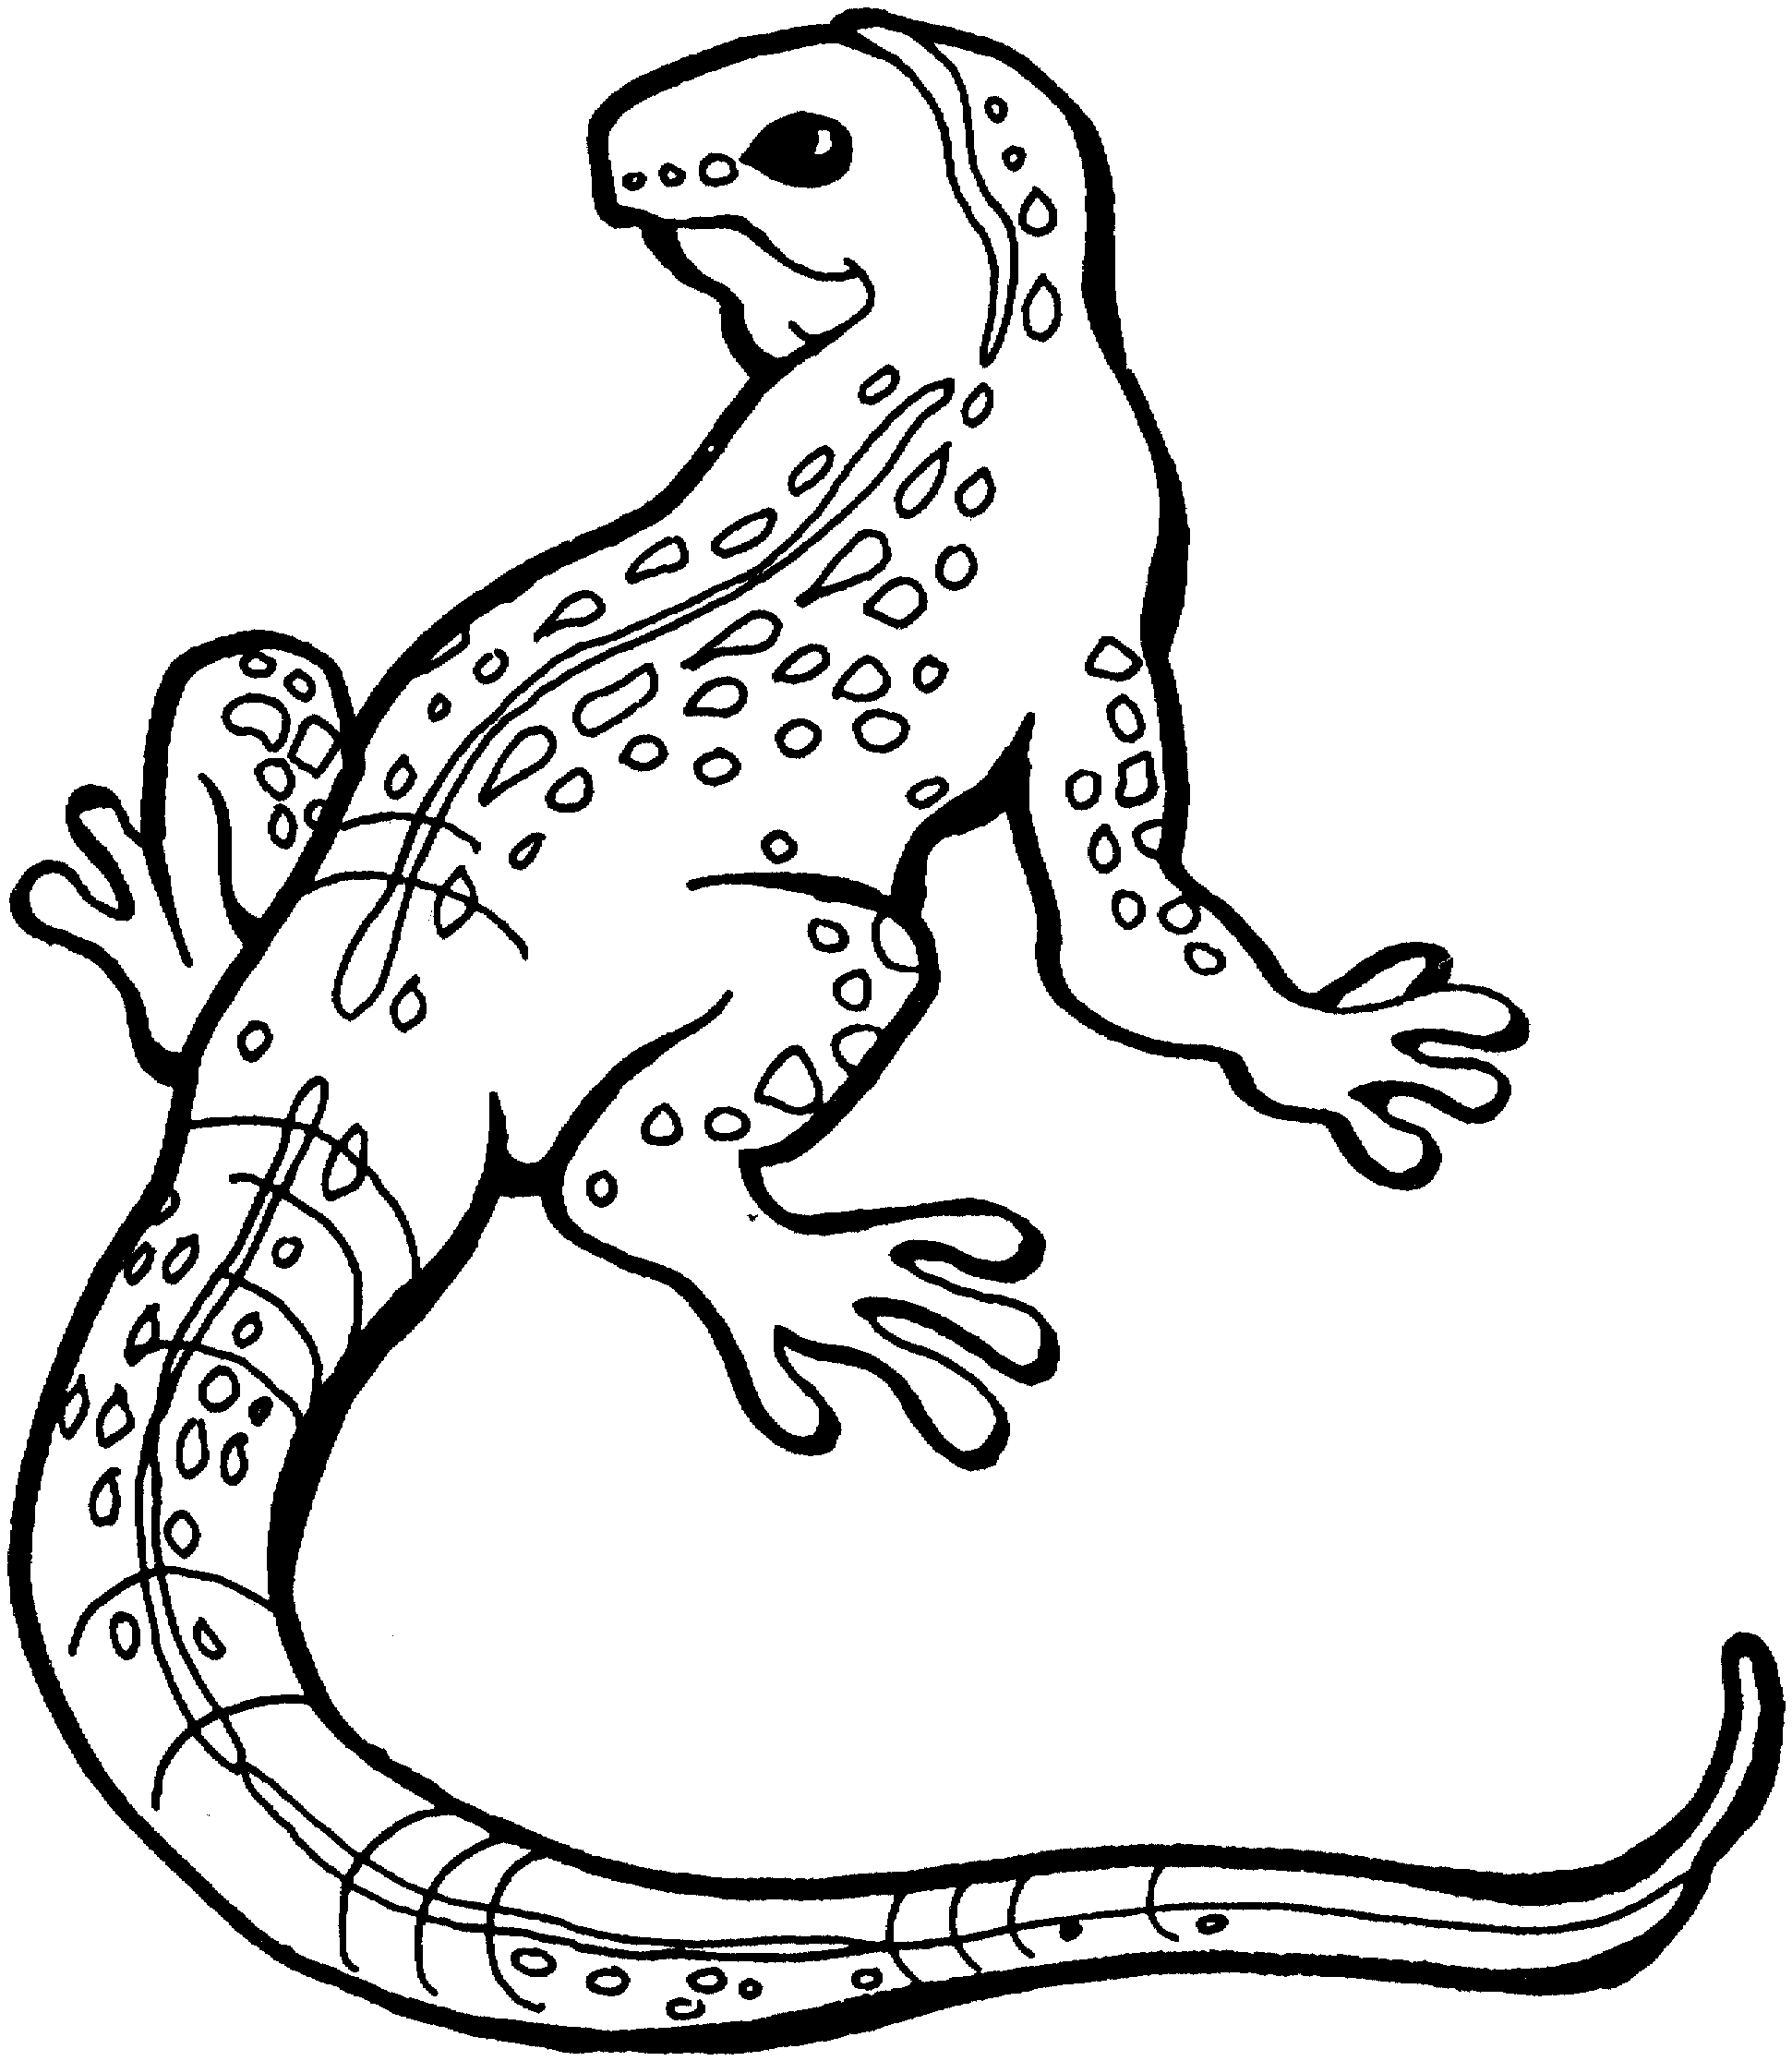 lizard coloring pages lizard coloring pages - Lizard Coloring Pages 2